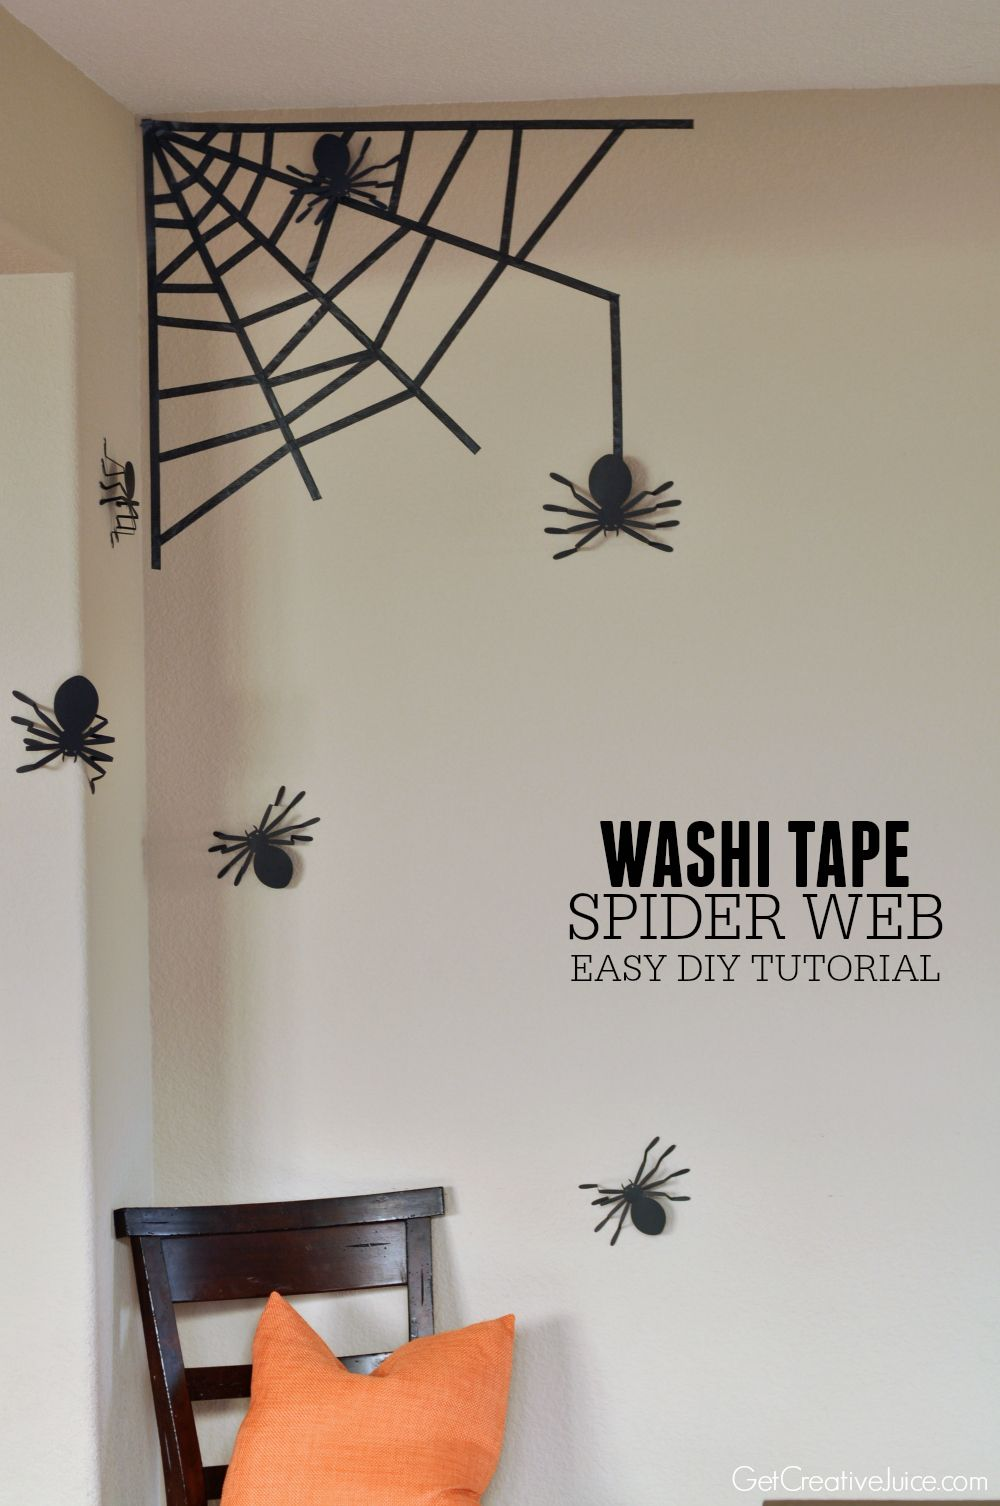 Washi tape spider web for your wall easy diy tutorial washi tape spider web for your wall easy diy tutorial amipublicfo Choice Image